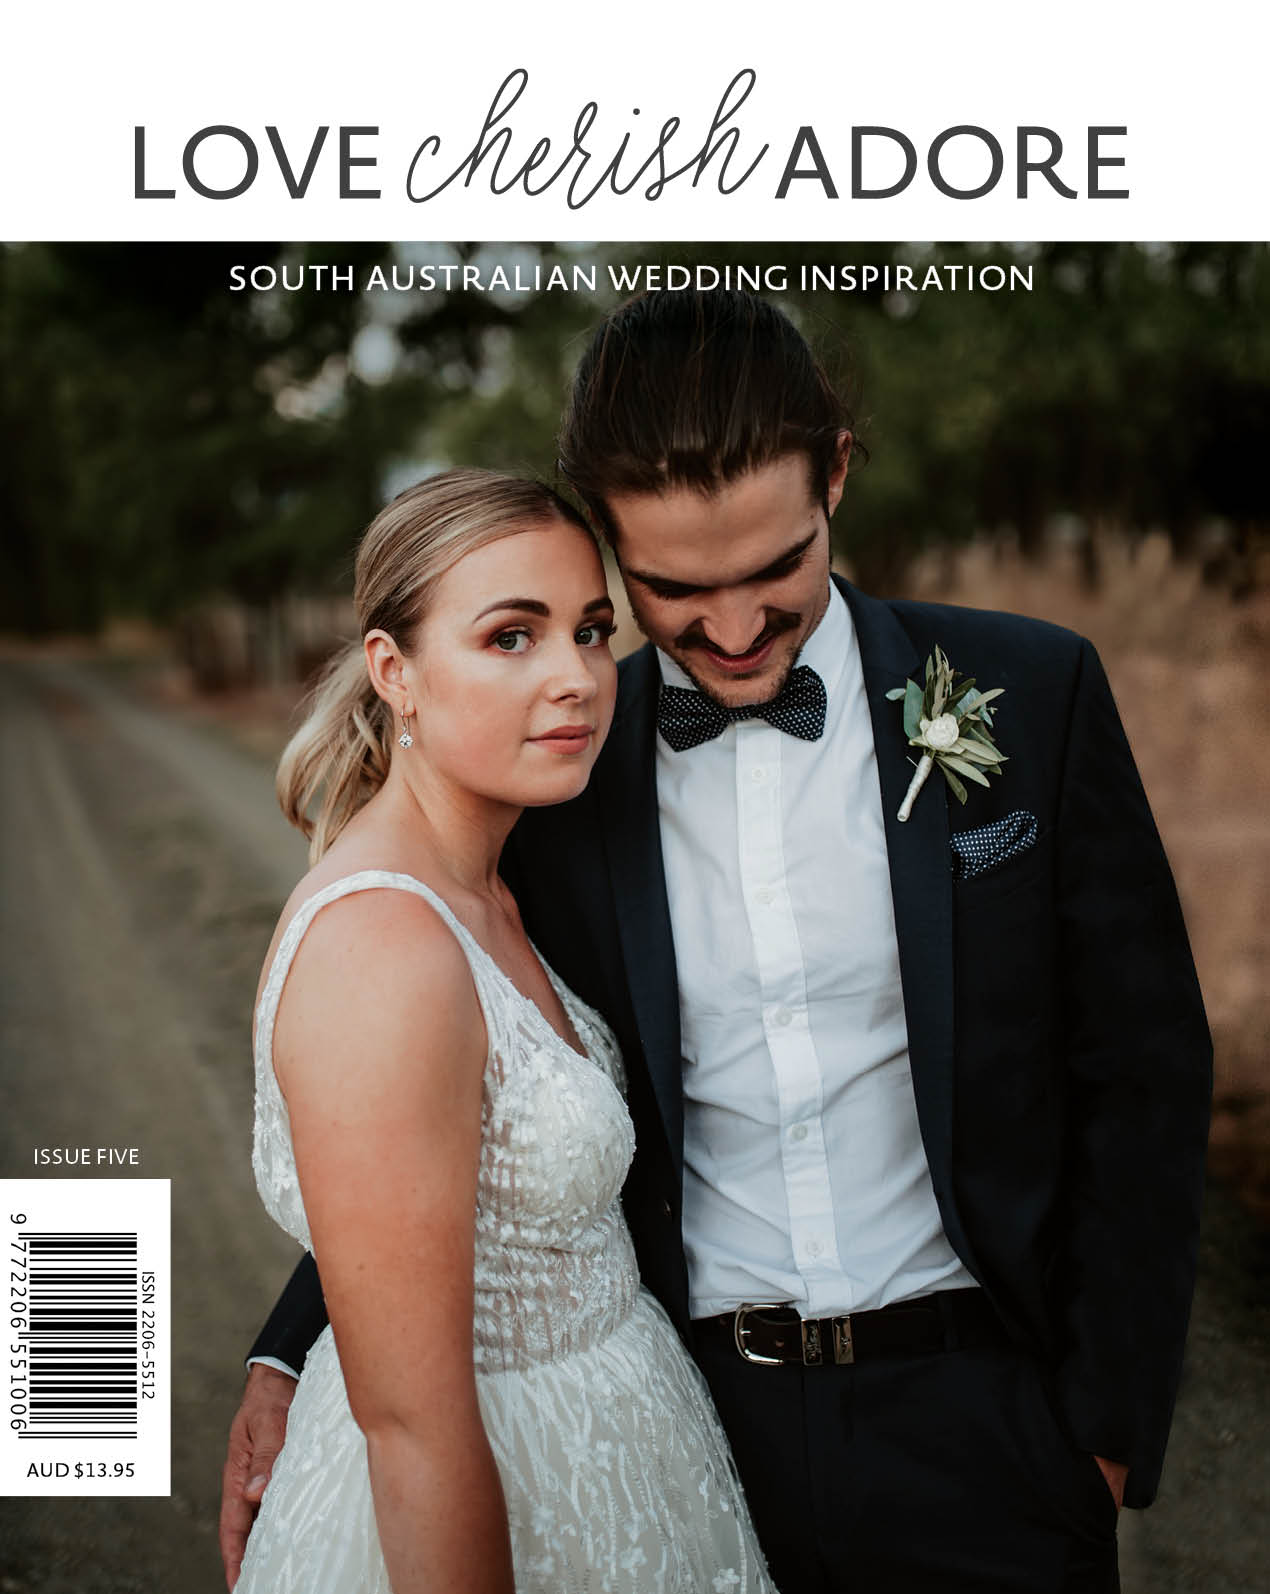 Image of Love Cherish Adore - Issue Five